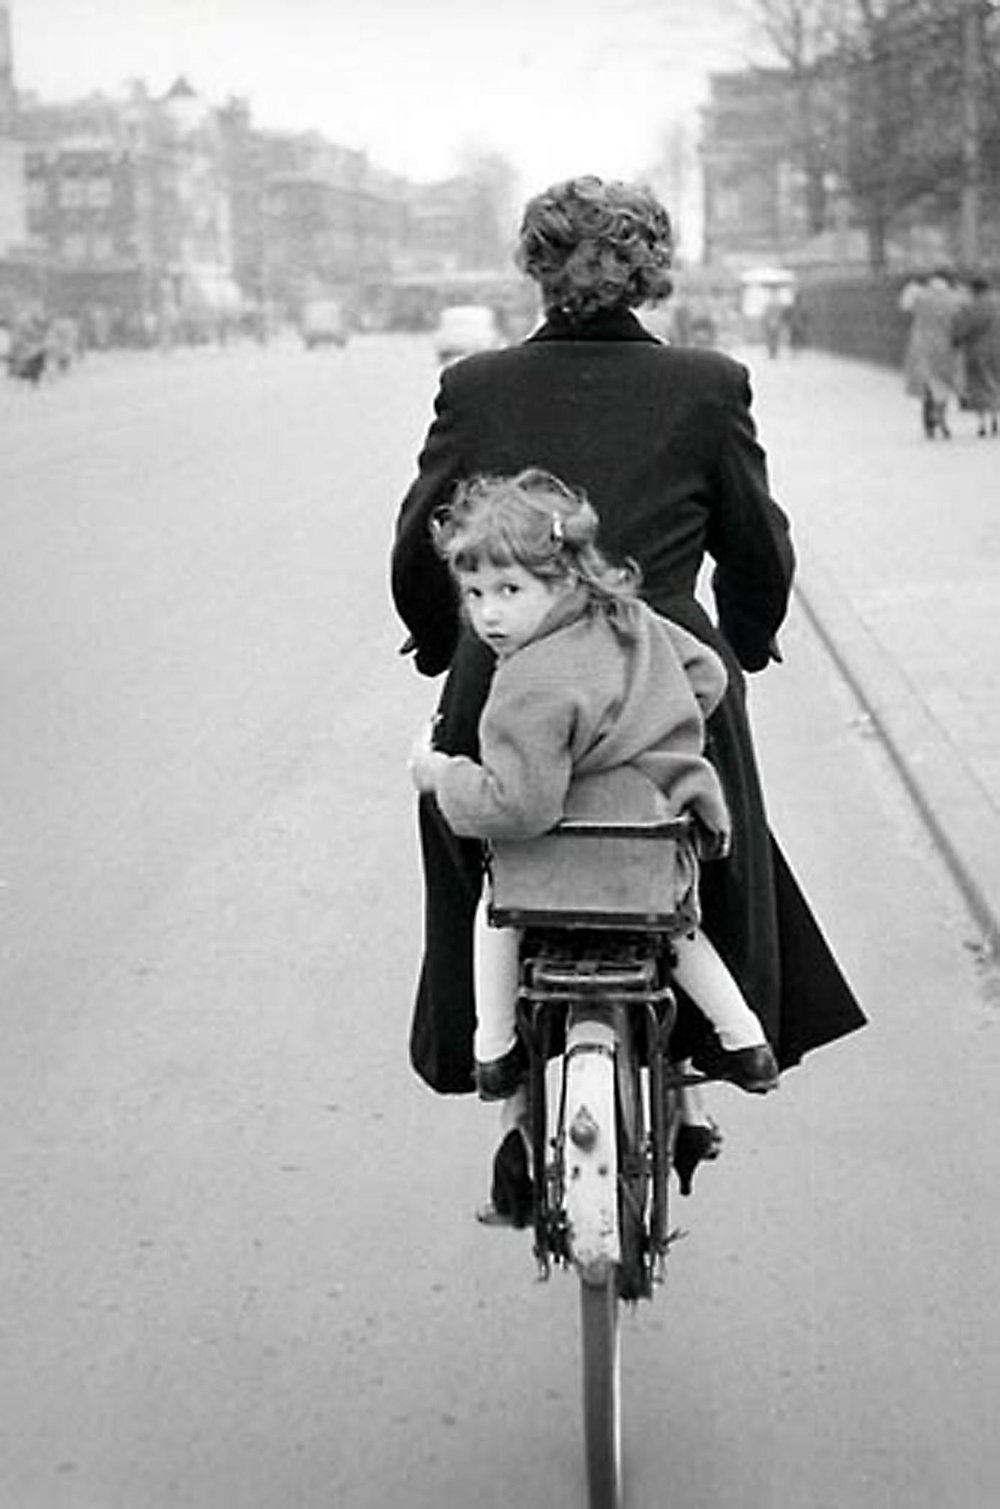 HANNON_girl_on_rear_of_bicycle_(copenhagen)_1956_p11x14_high.jpg